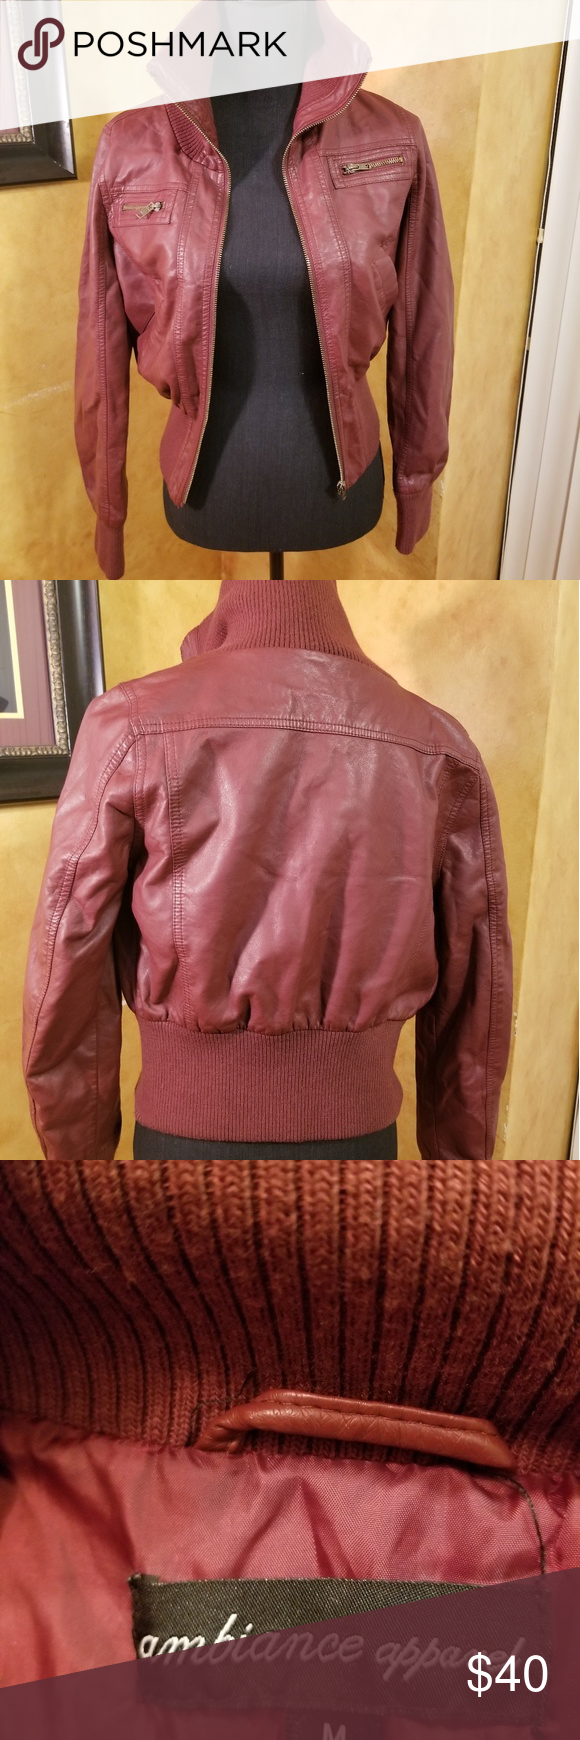 Ambiance Apparel Red Leather Bomber Jacket In 2021 Ambiance Apparel Leather Bomber Jacket Coats Jackets Women [ 1740 x 580 Pixel ]